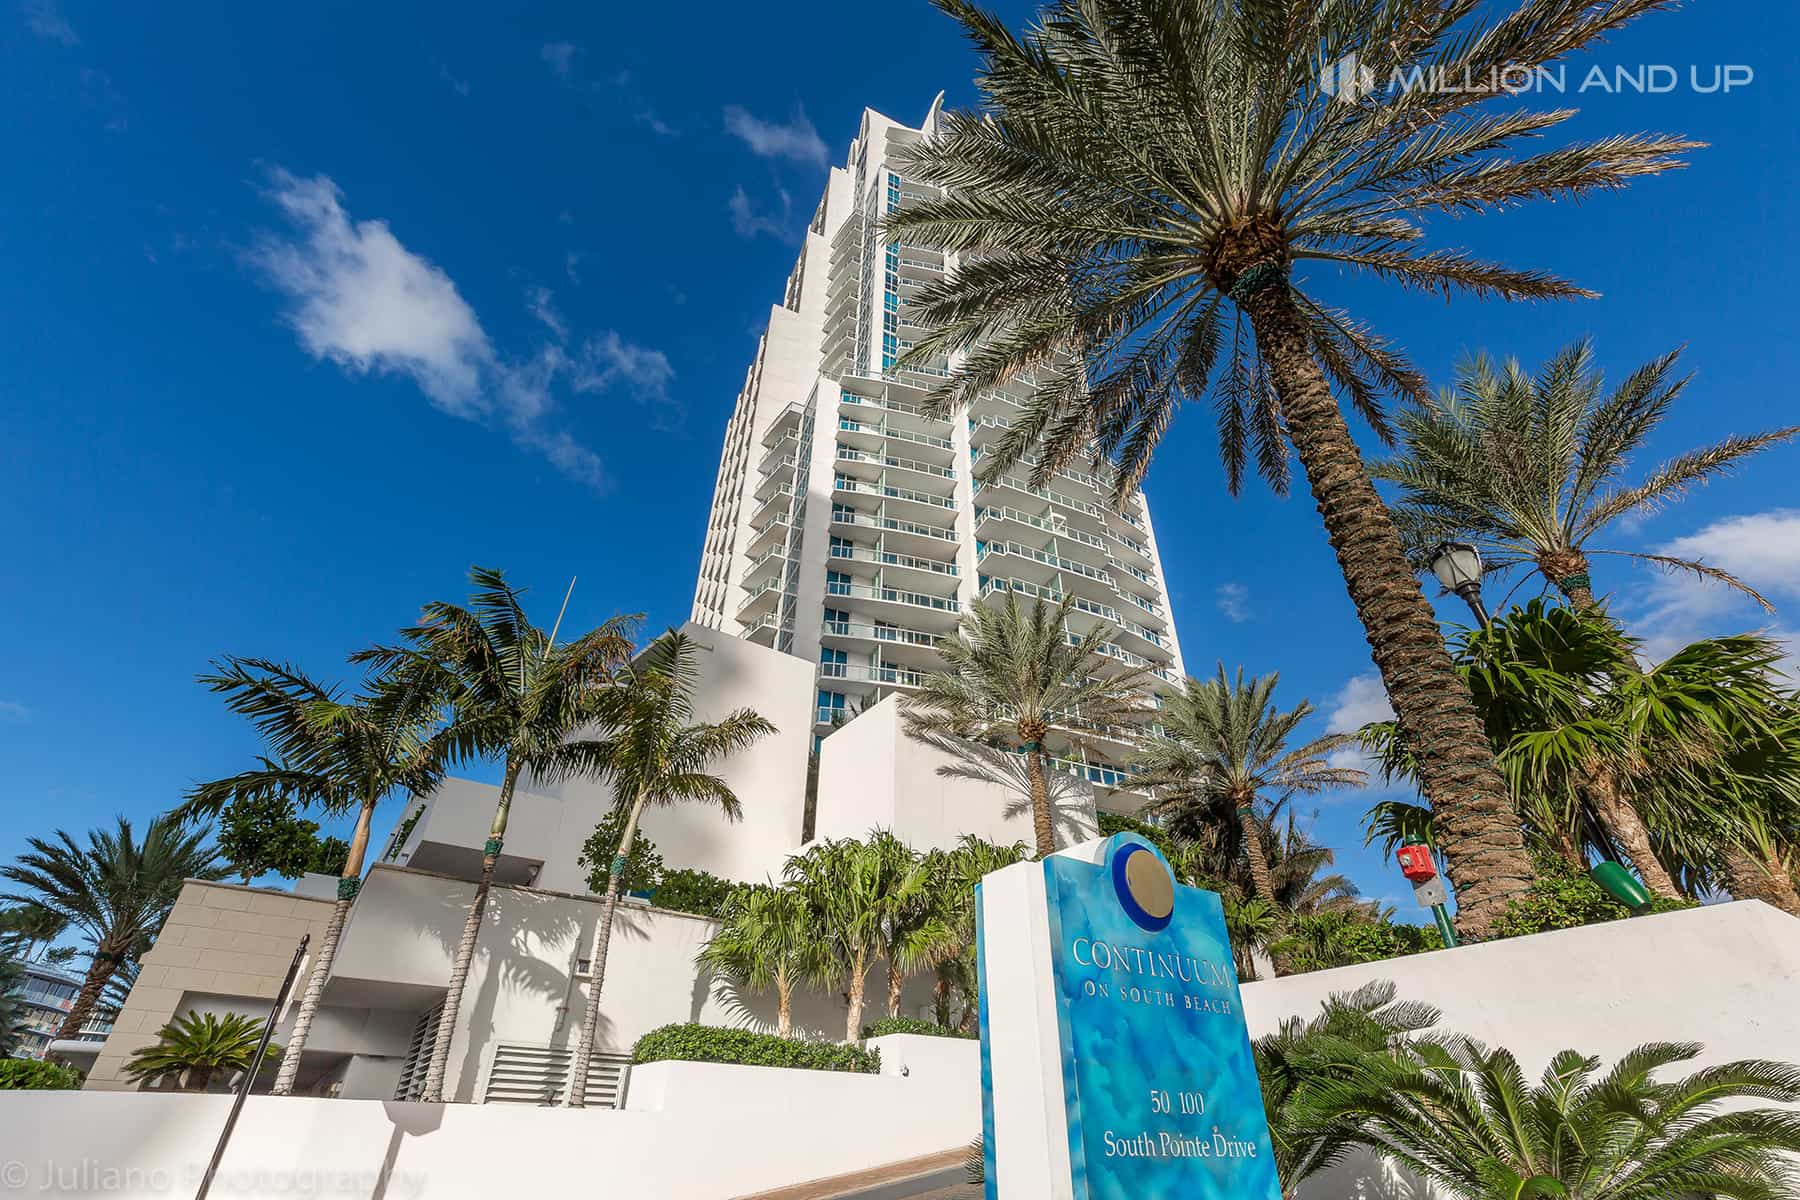 Continuum South Beach